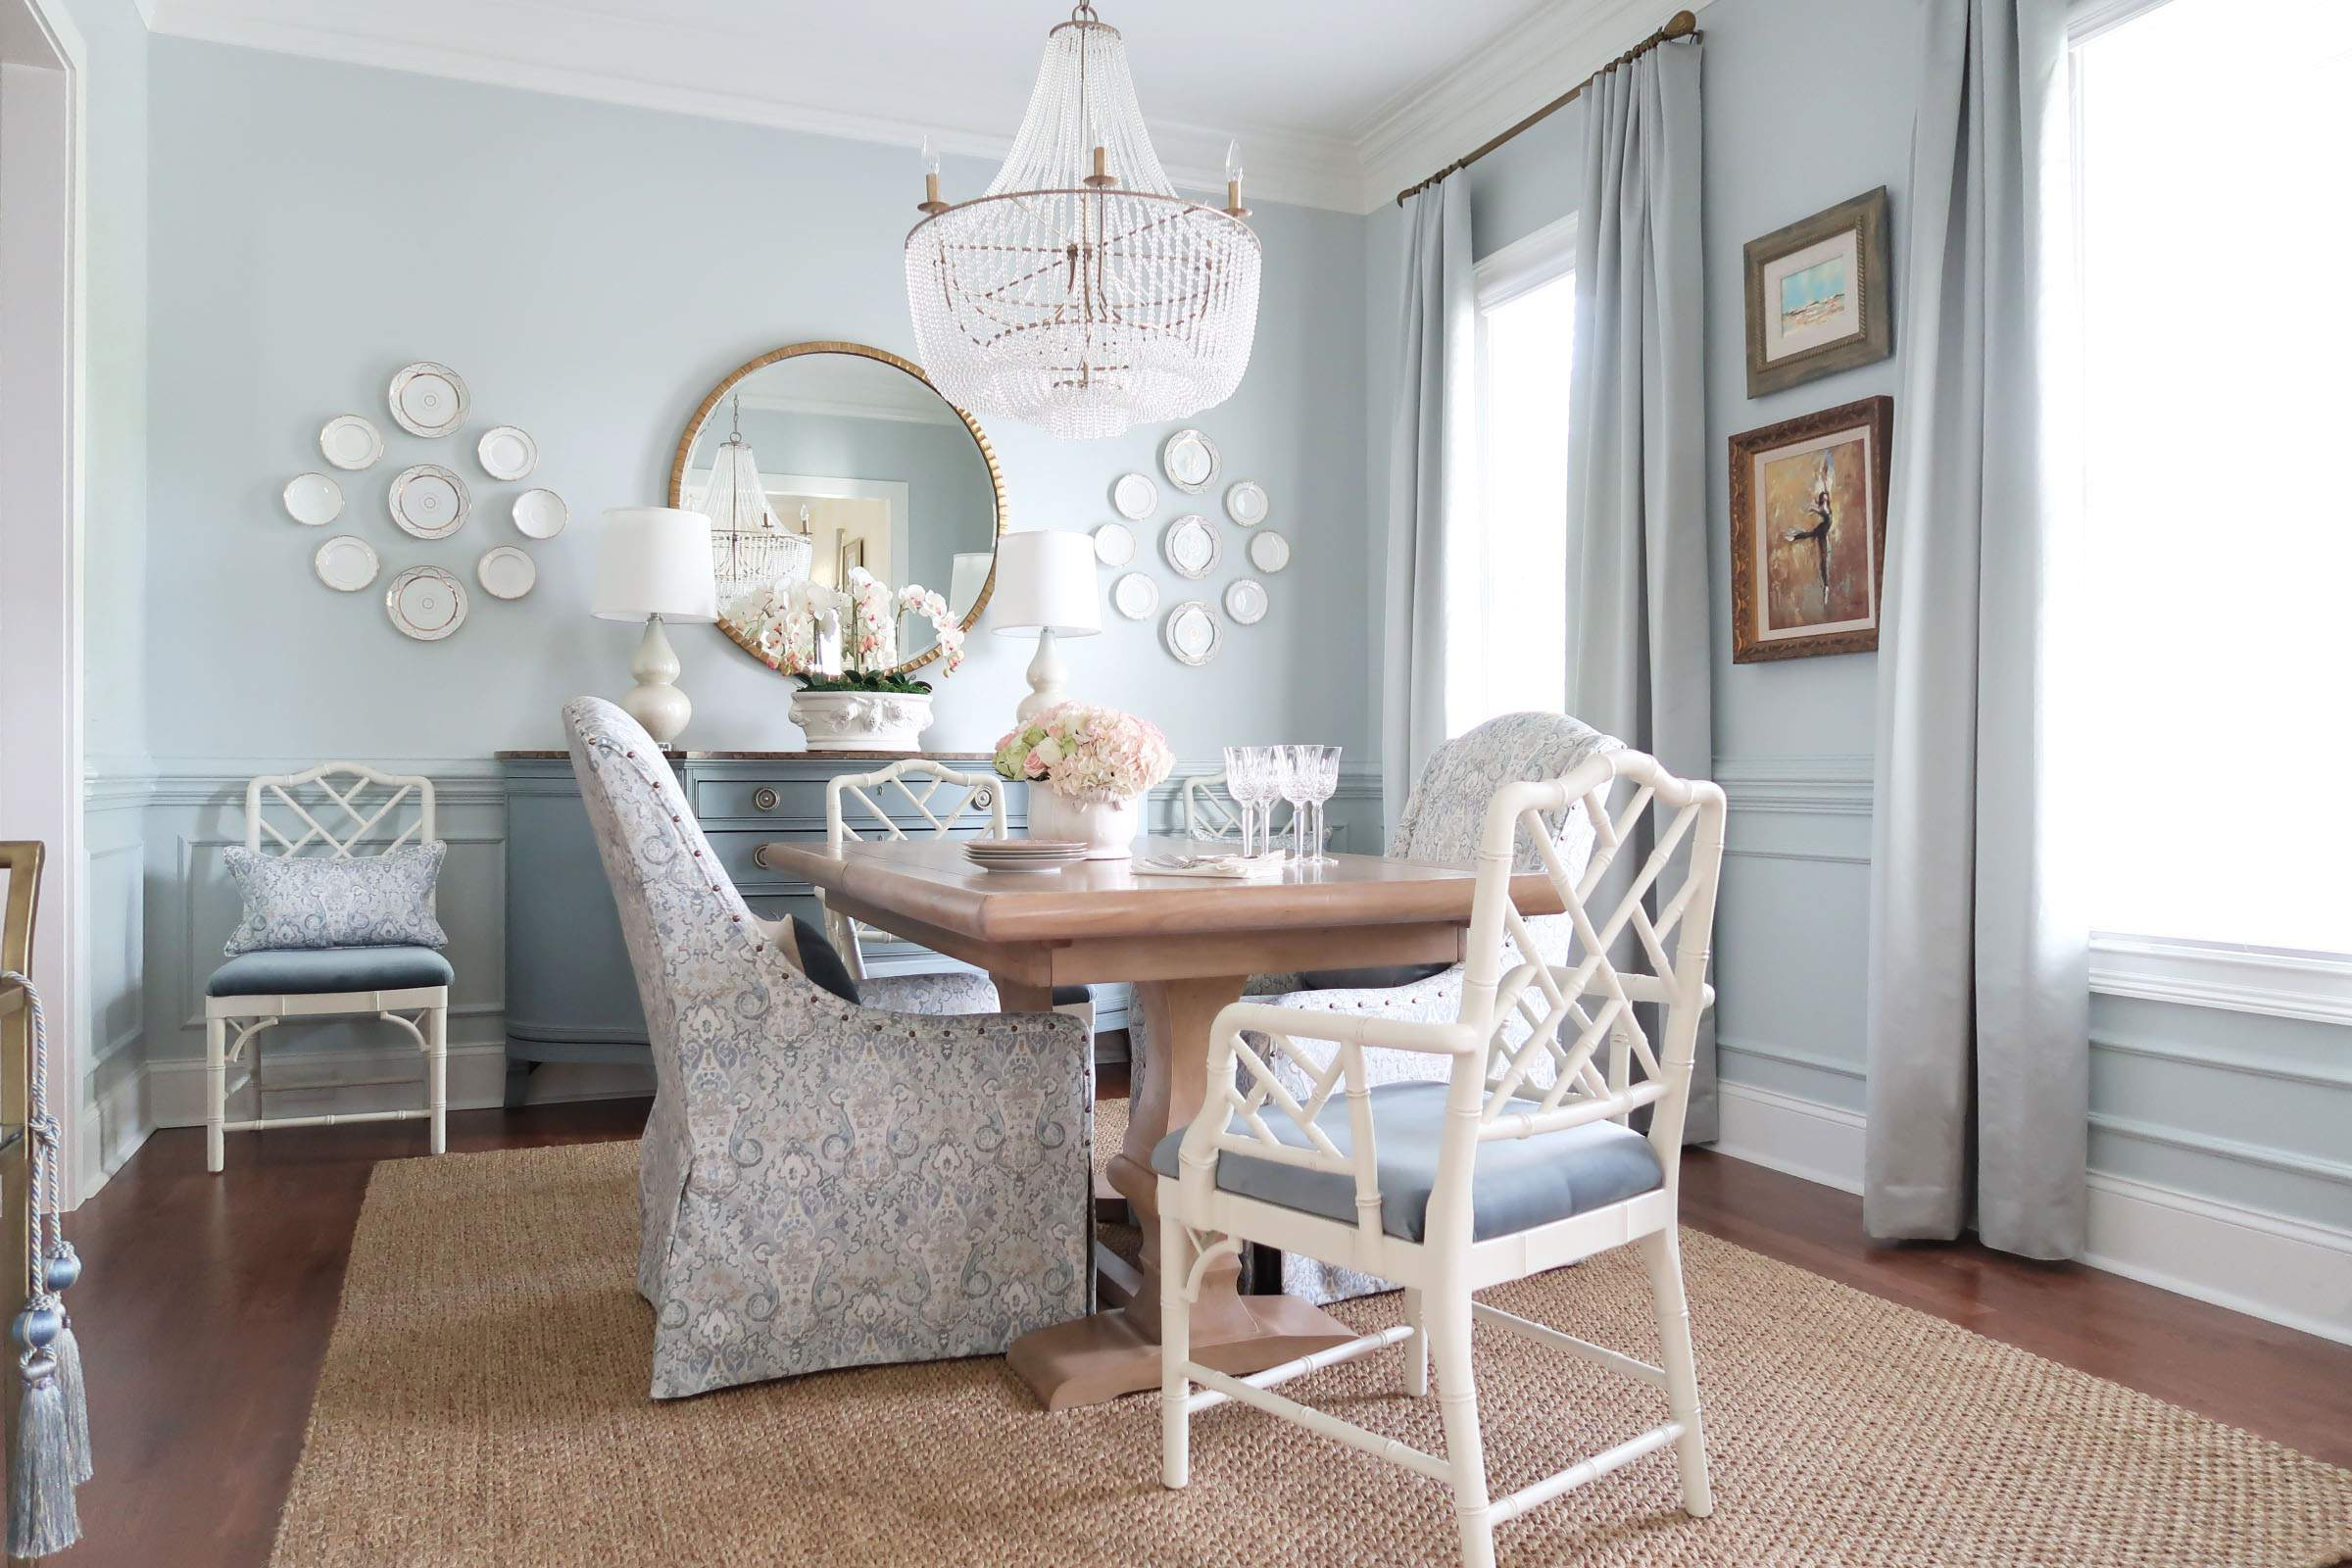 Reveal French Country Dining Room at an Angle with Bar Cart